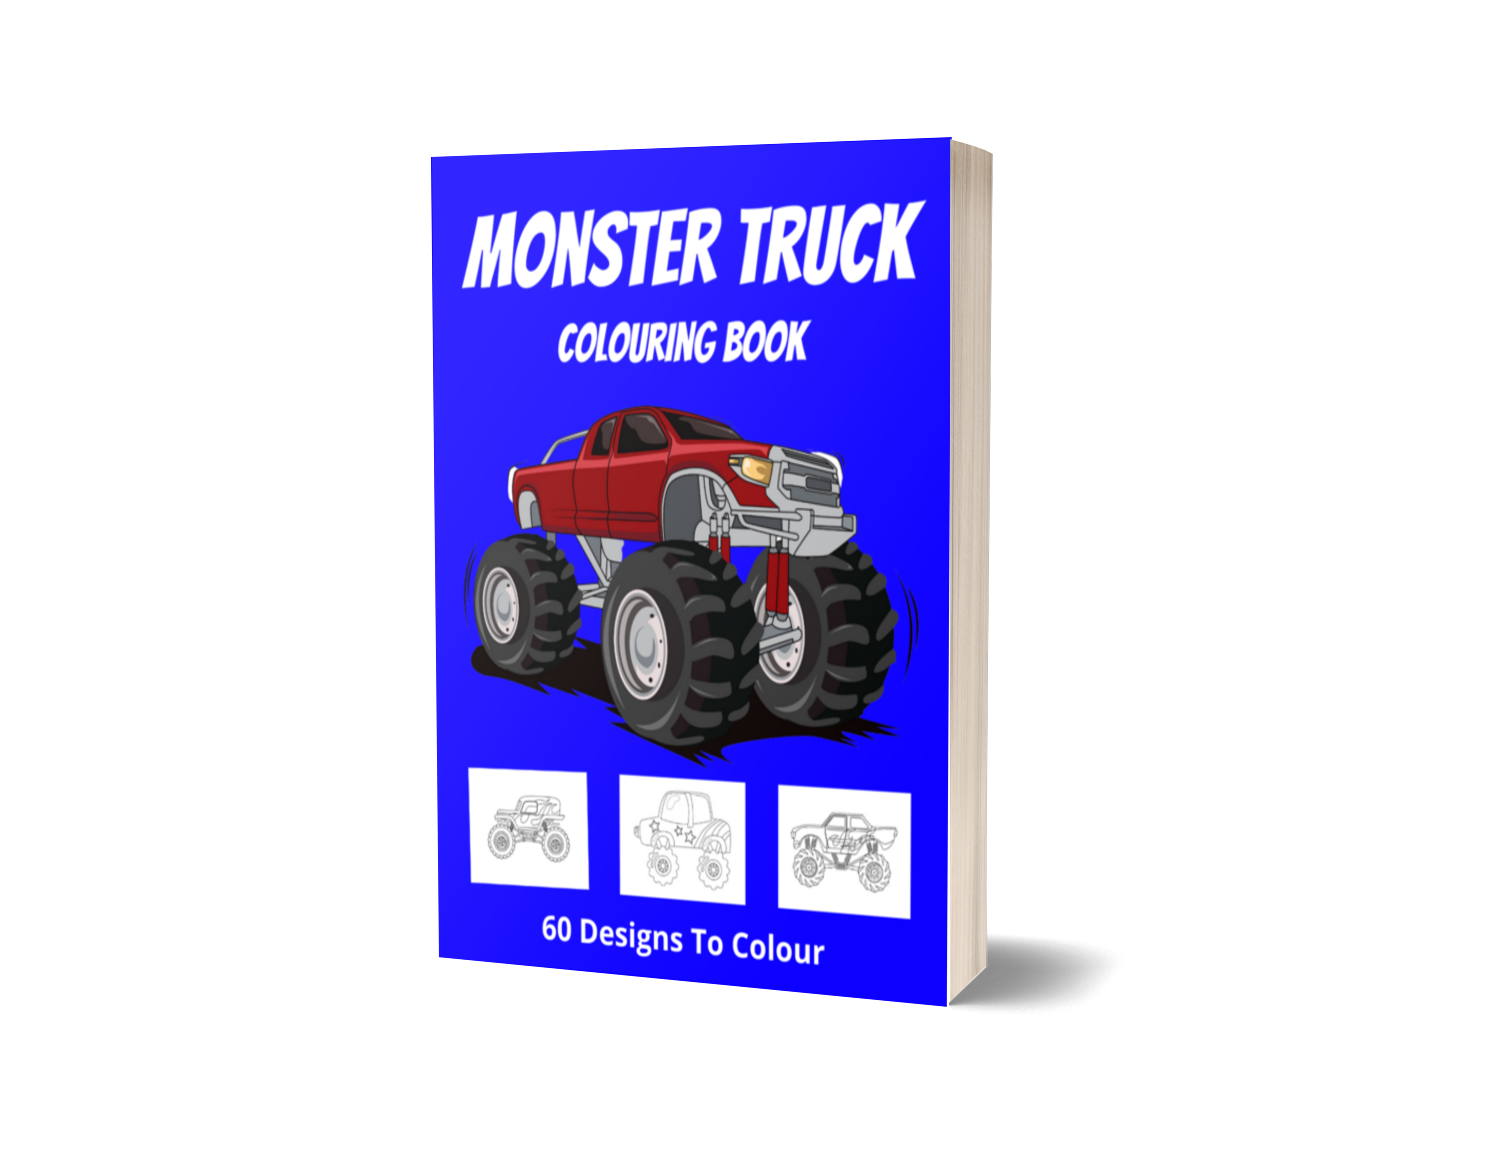 Monster Truck Colouring Book